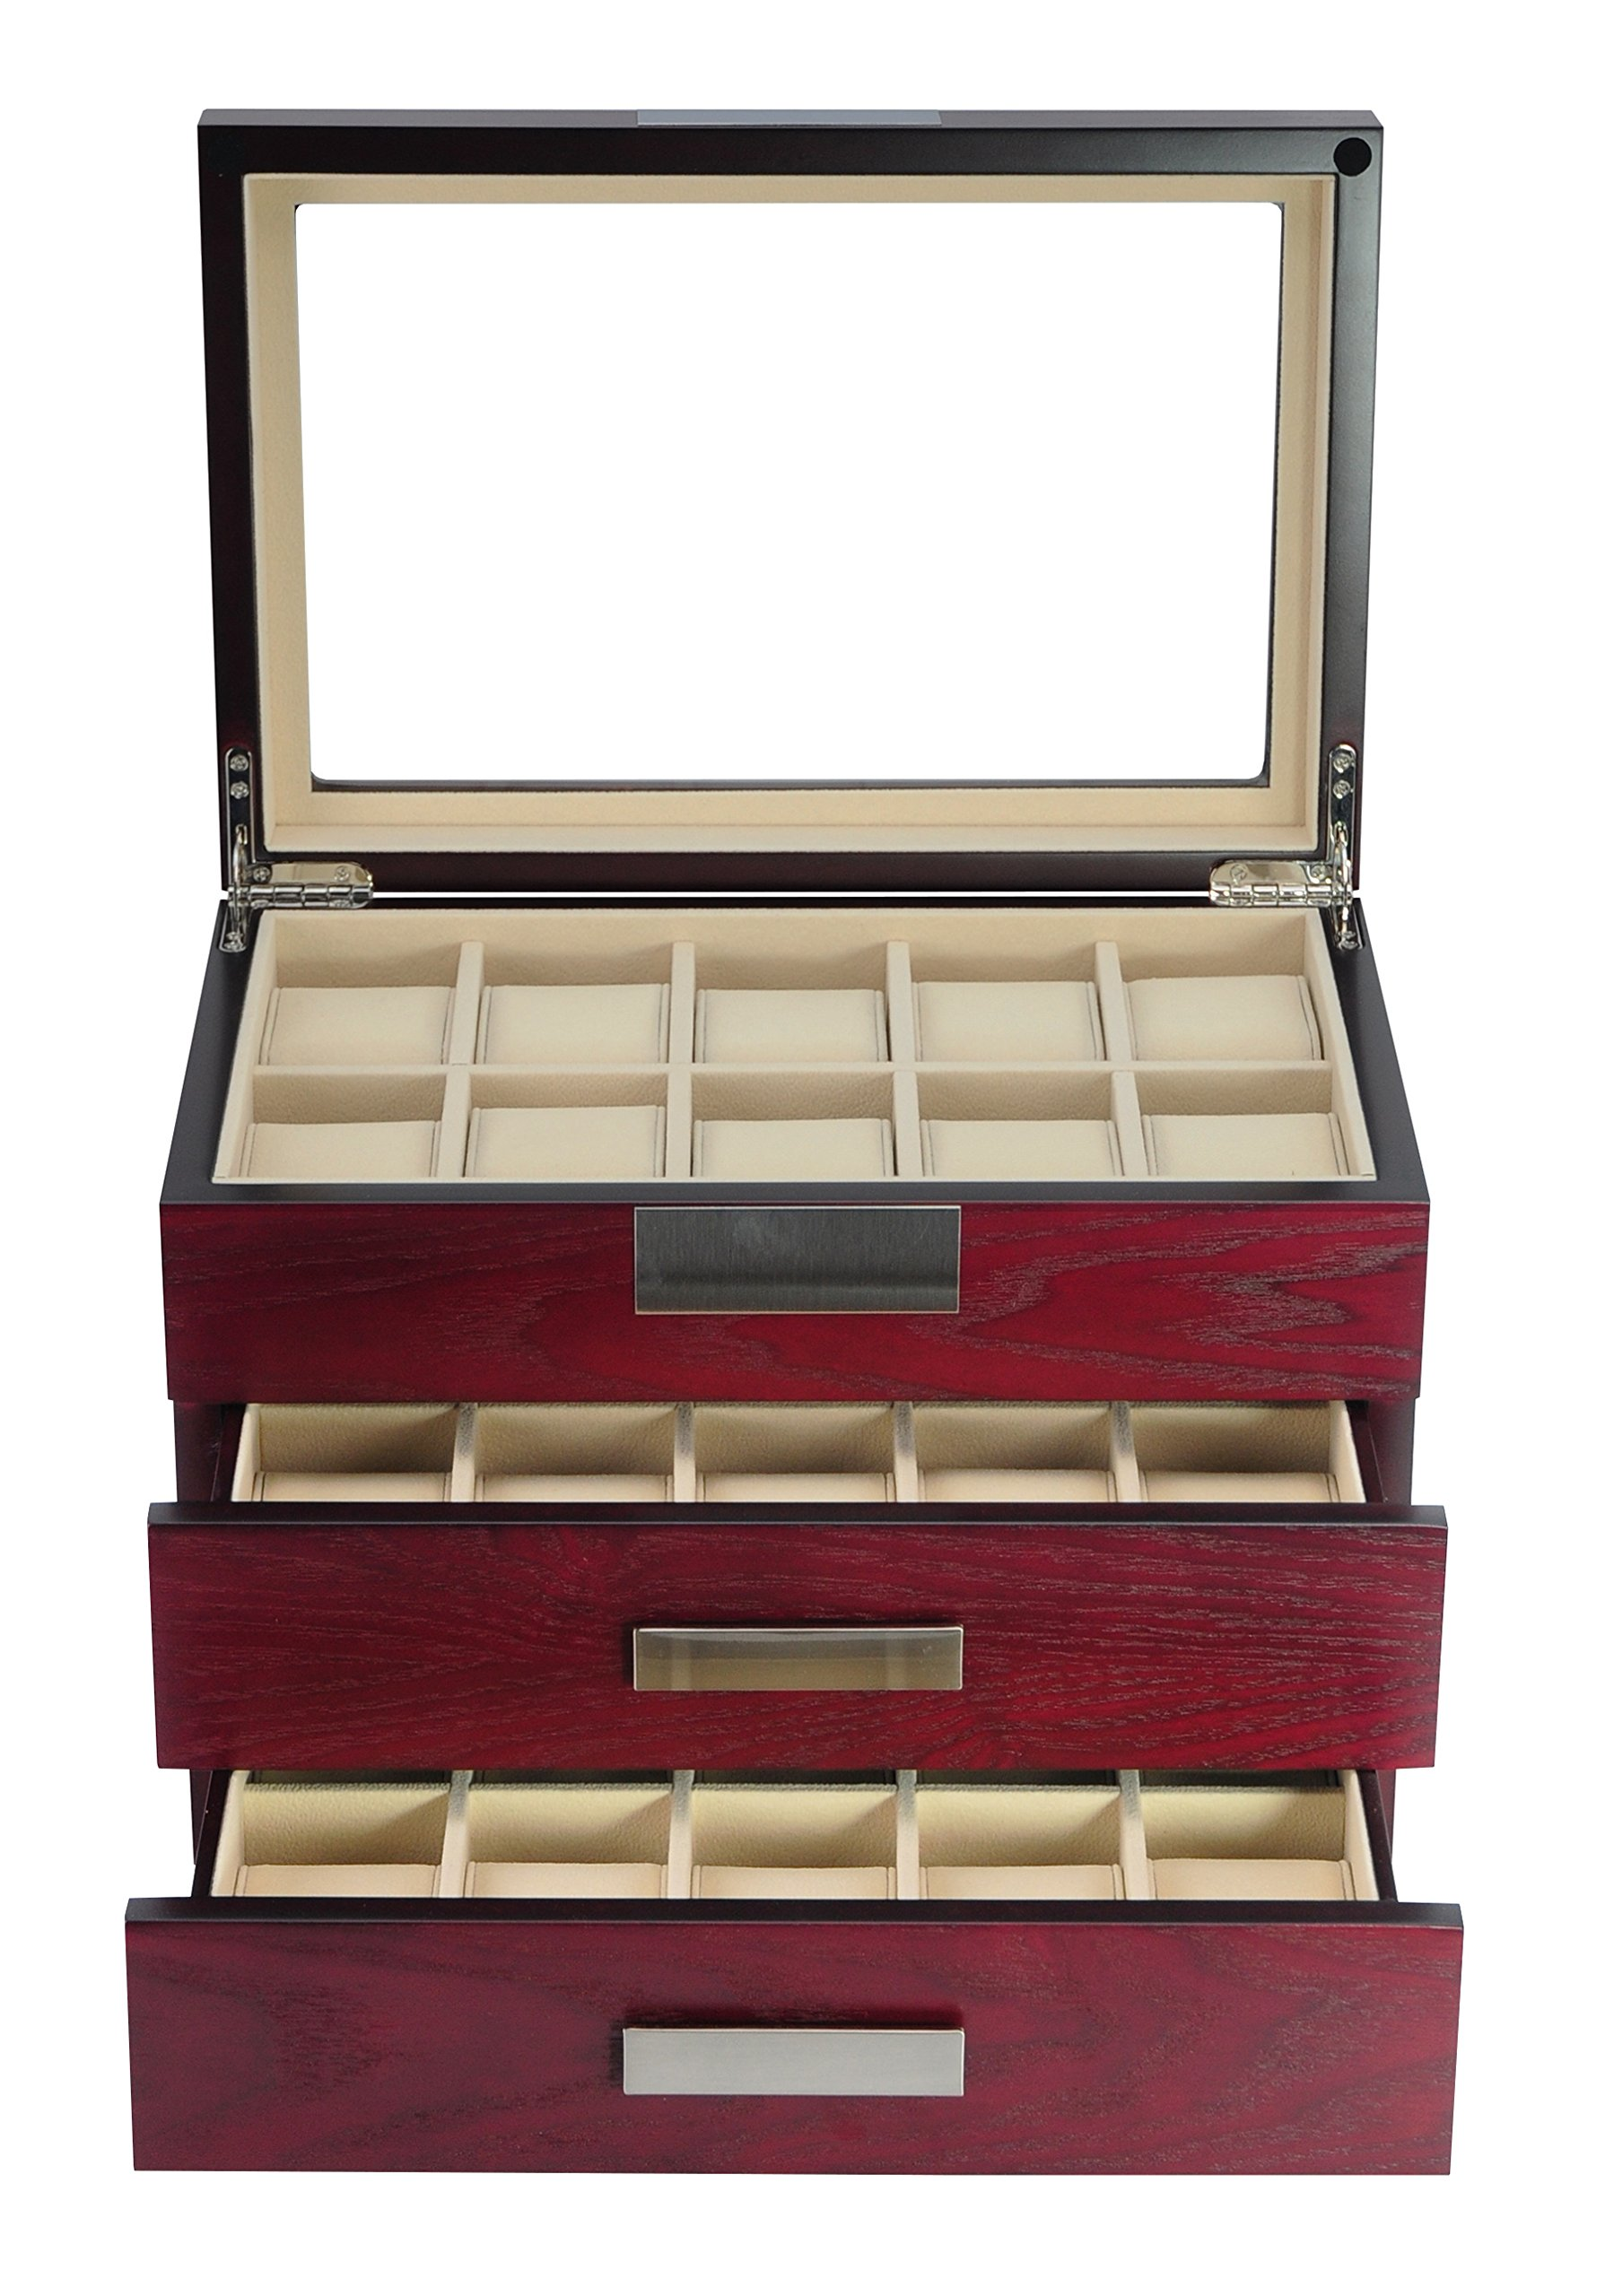 TimelyBuys Luxury 30 Cherry Wood Watch Box Display Case 3 Level Storage Jewelry Organizer with Glass Top, Stainless Steel Accents, 2 Drawers for Closet, Dresser or Vanity by TimelyBuys